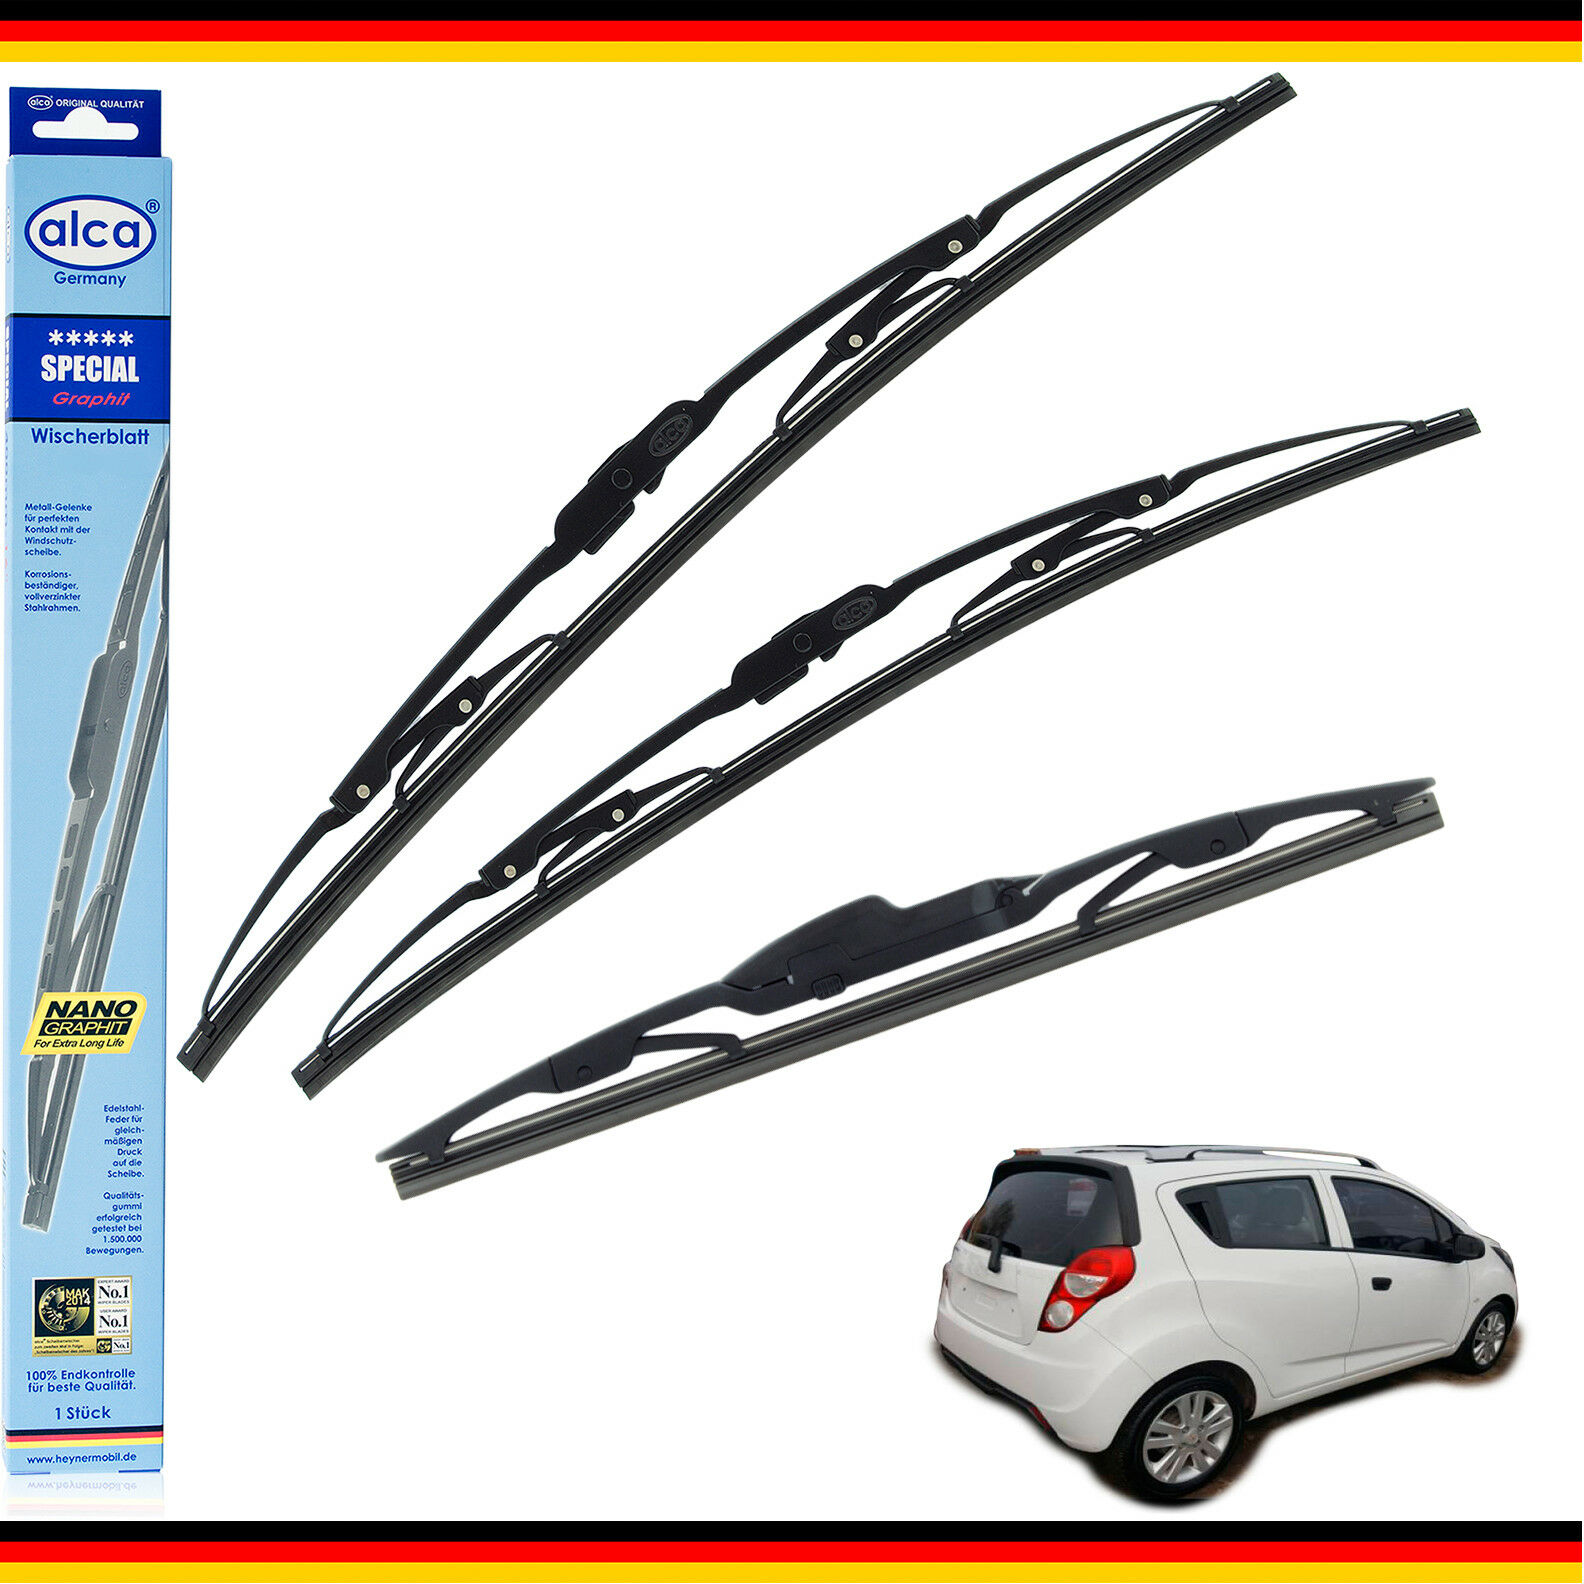 Mitsubisi Space Star Models 1998 To 2005 Alca Germany Special Front Rear Windscreen Wiper Blades Replacement 211812 AS211812H RA